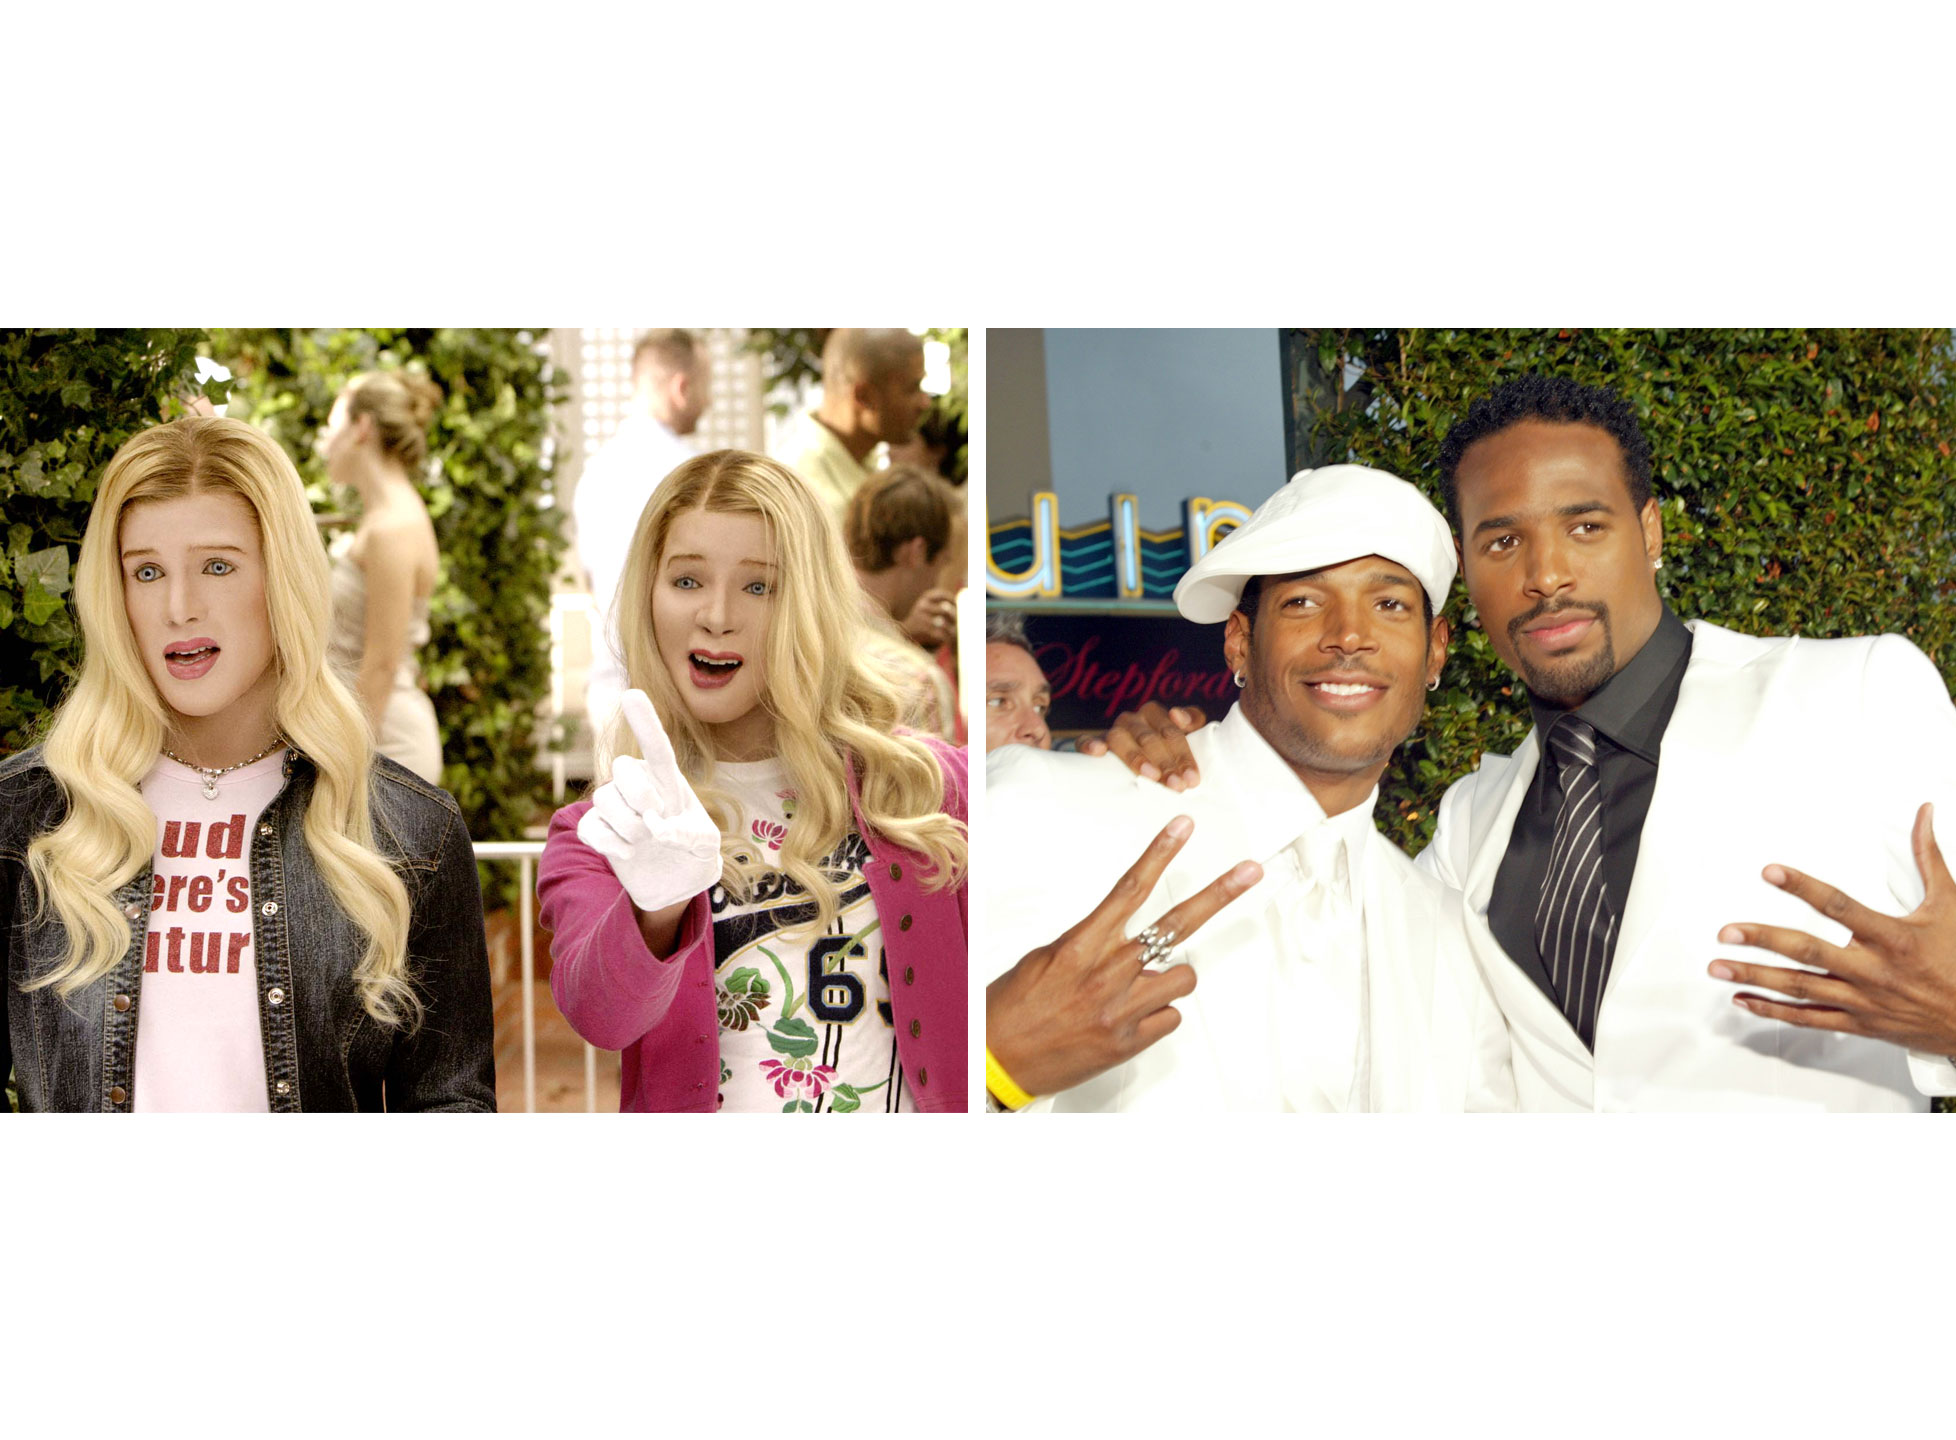 Marlon Wayans as Marcus Copeland and Shawn Wayans as Kevin Copeland in White Chicks